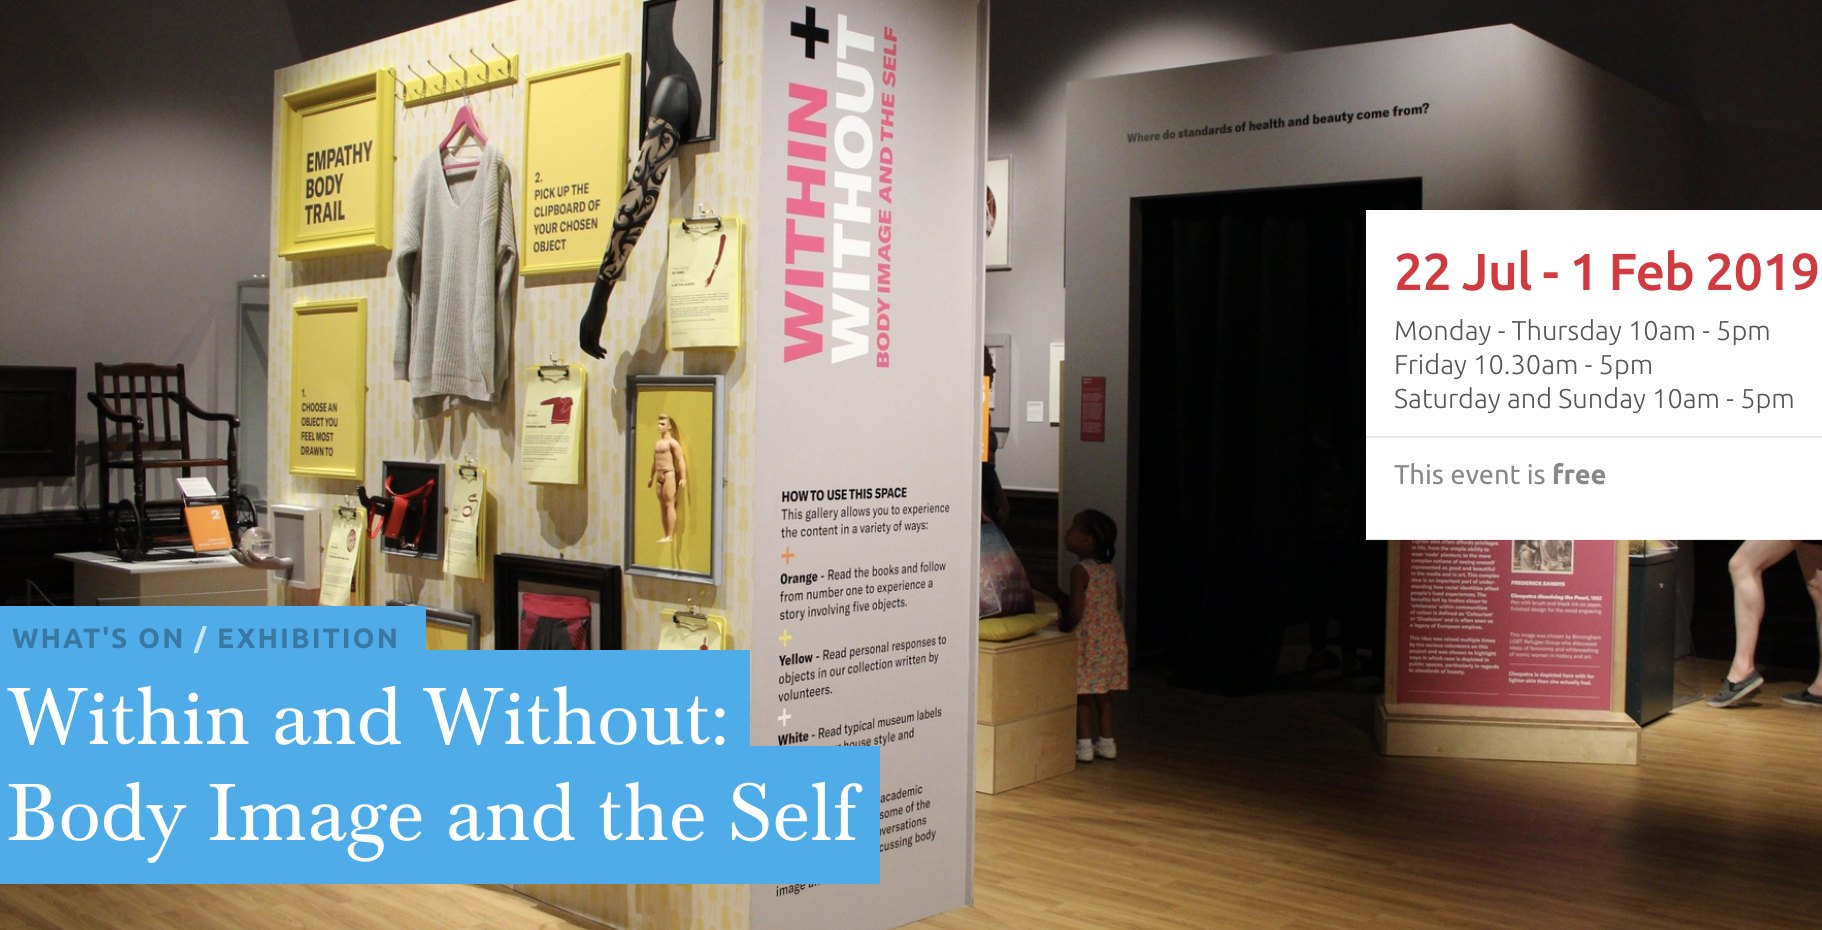 Within and Without: Body Image and the Self